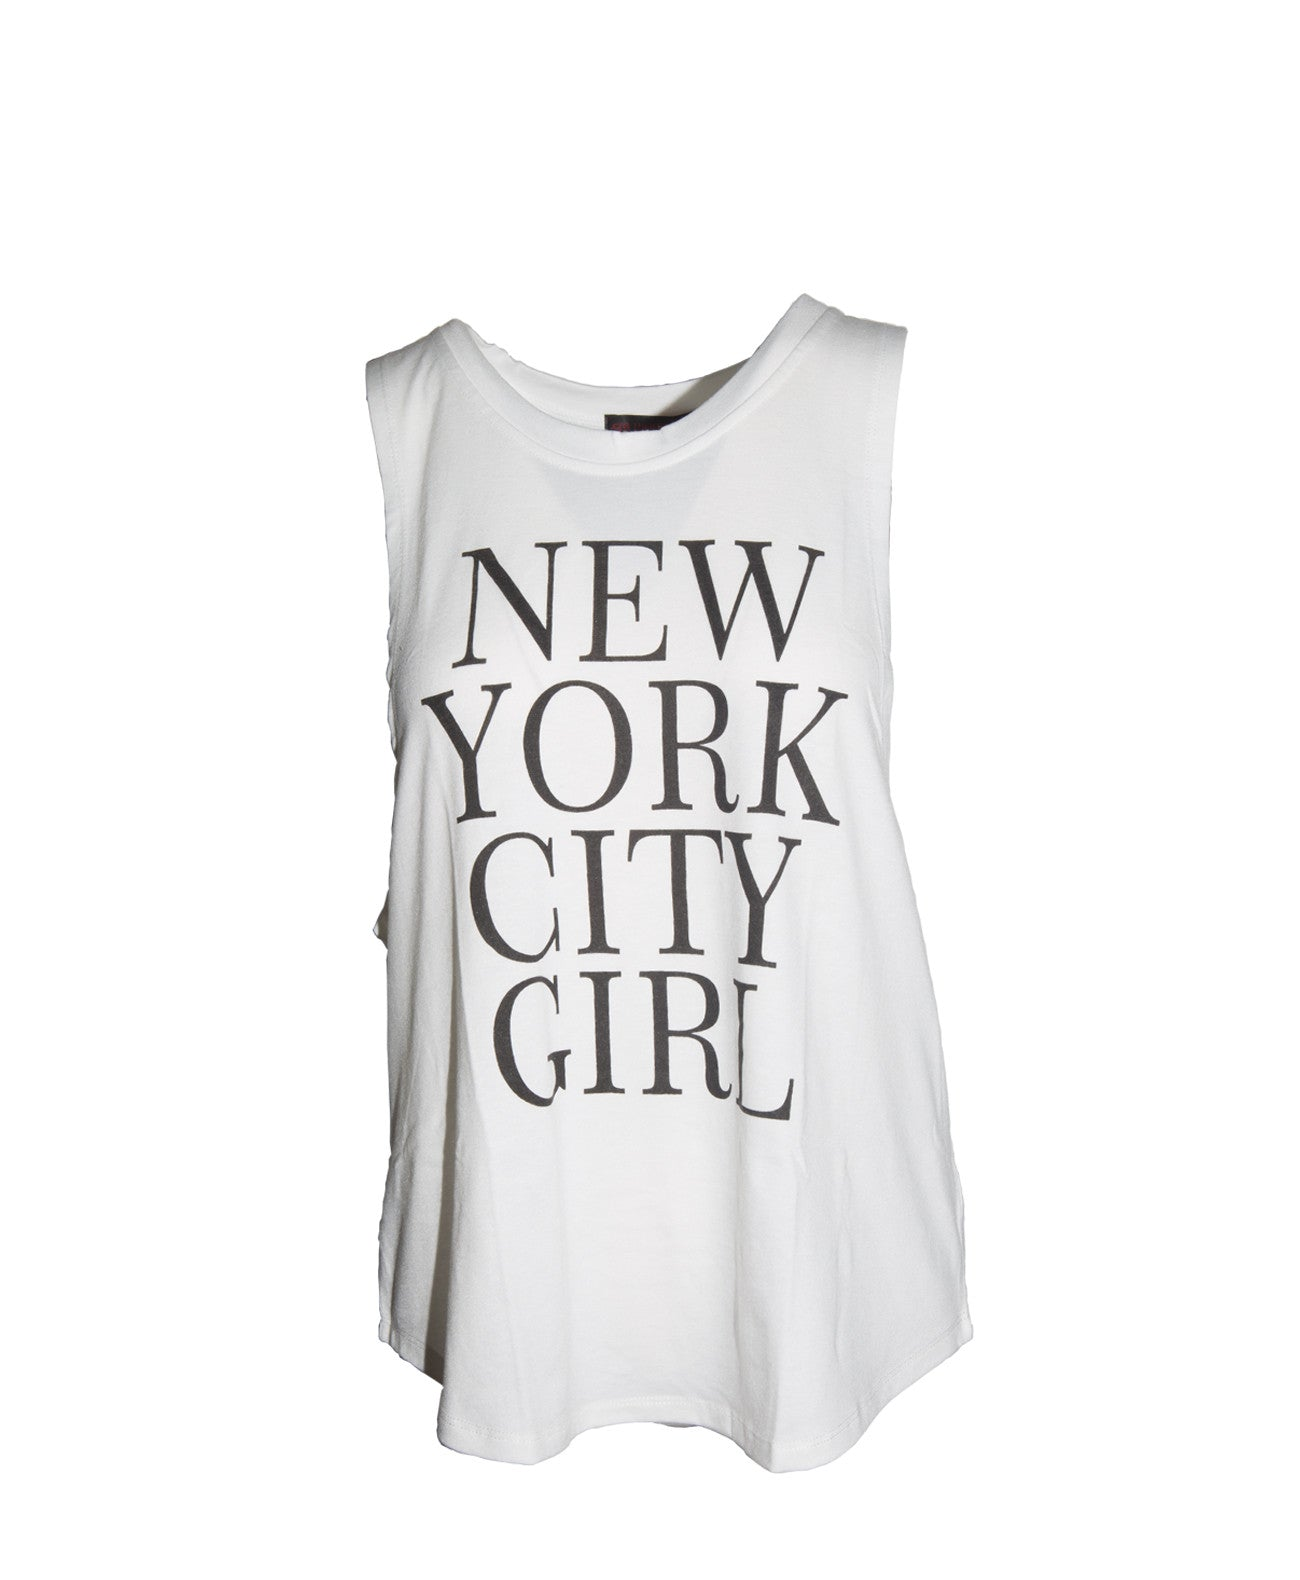 CT27 New York City girl tank